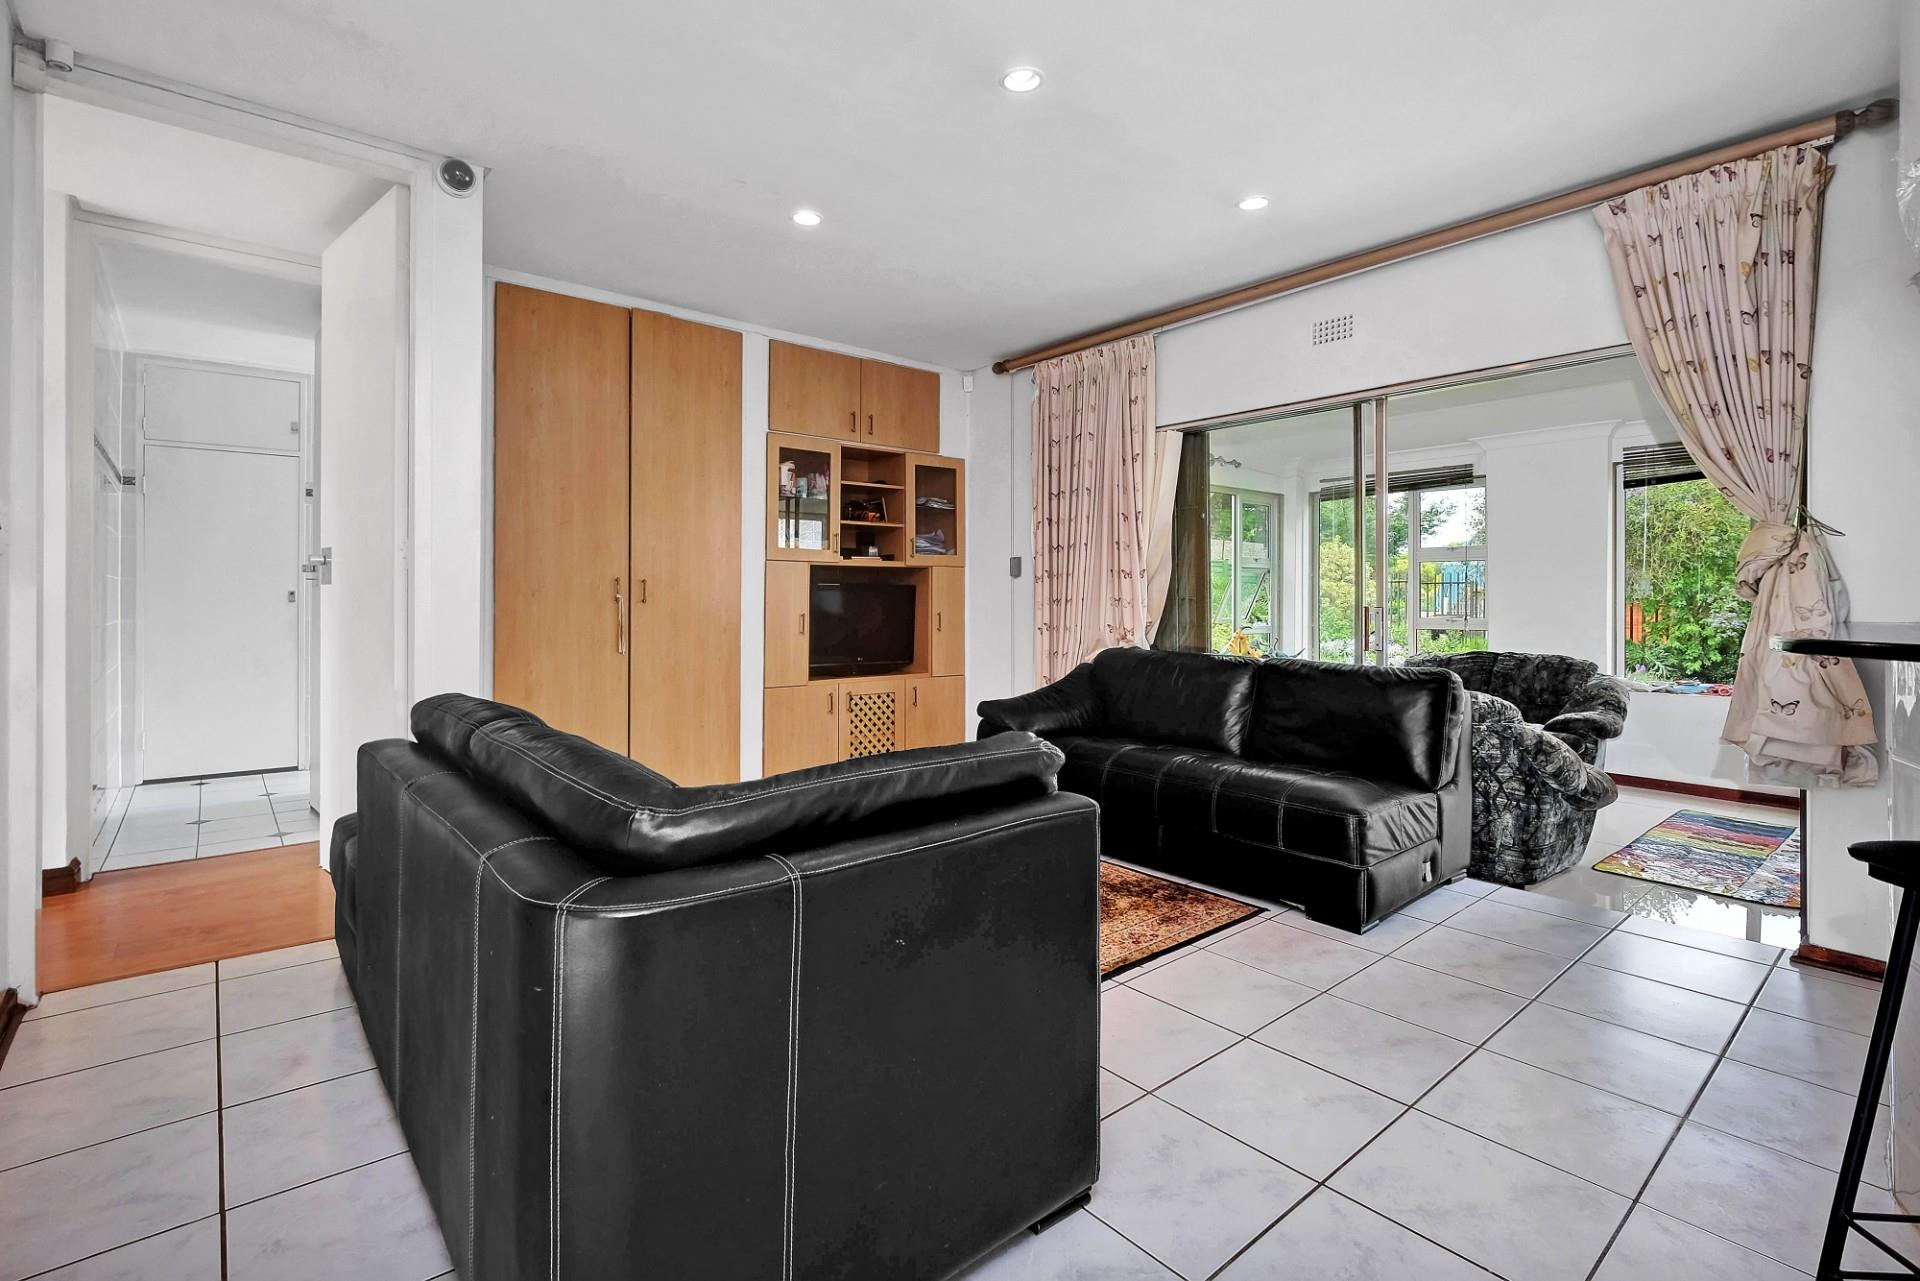 3 Bedroom House For Sale in Hurlingham Manor